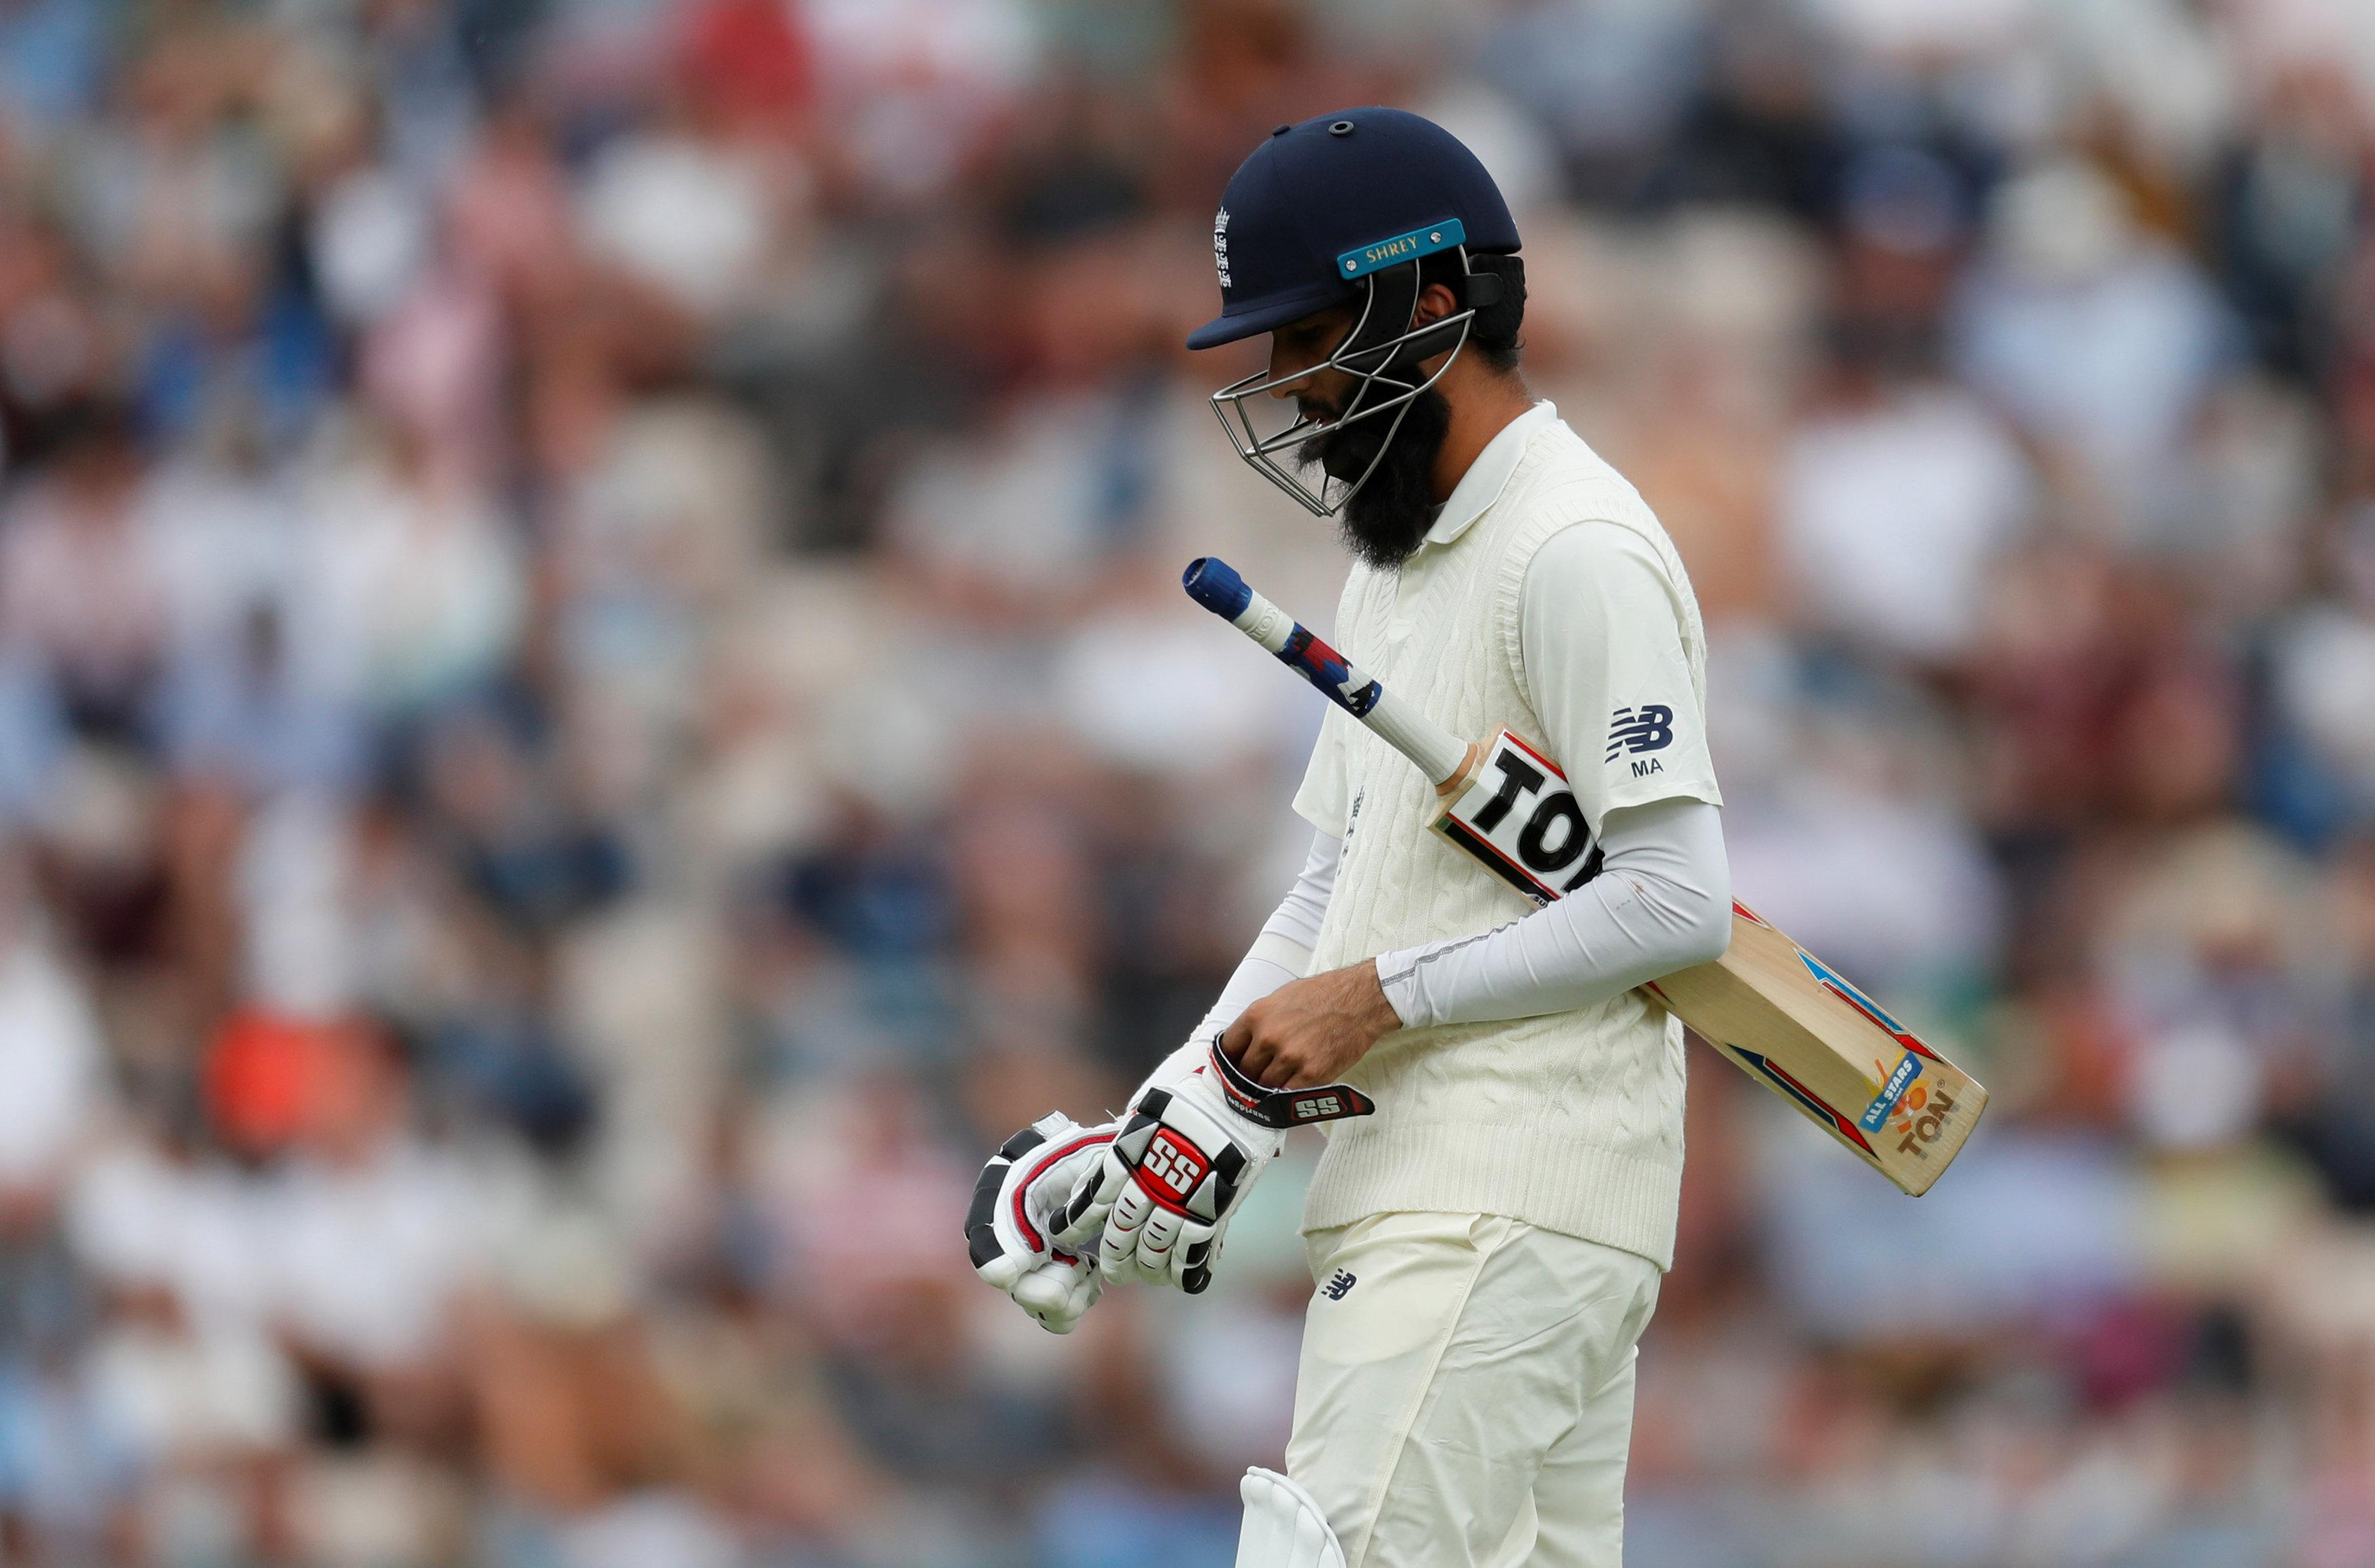 Moeen Ali hit a much-needed 40 as he built a partnership with Curran